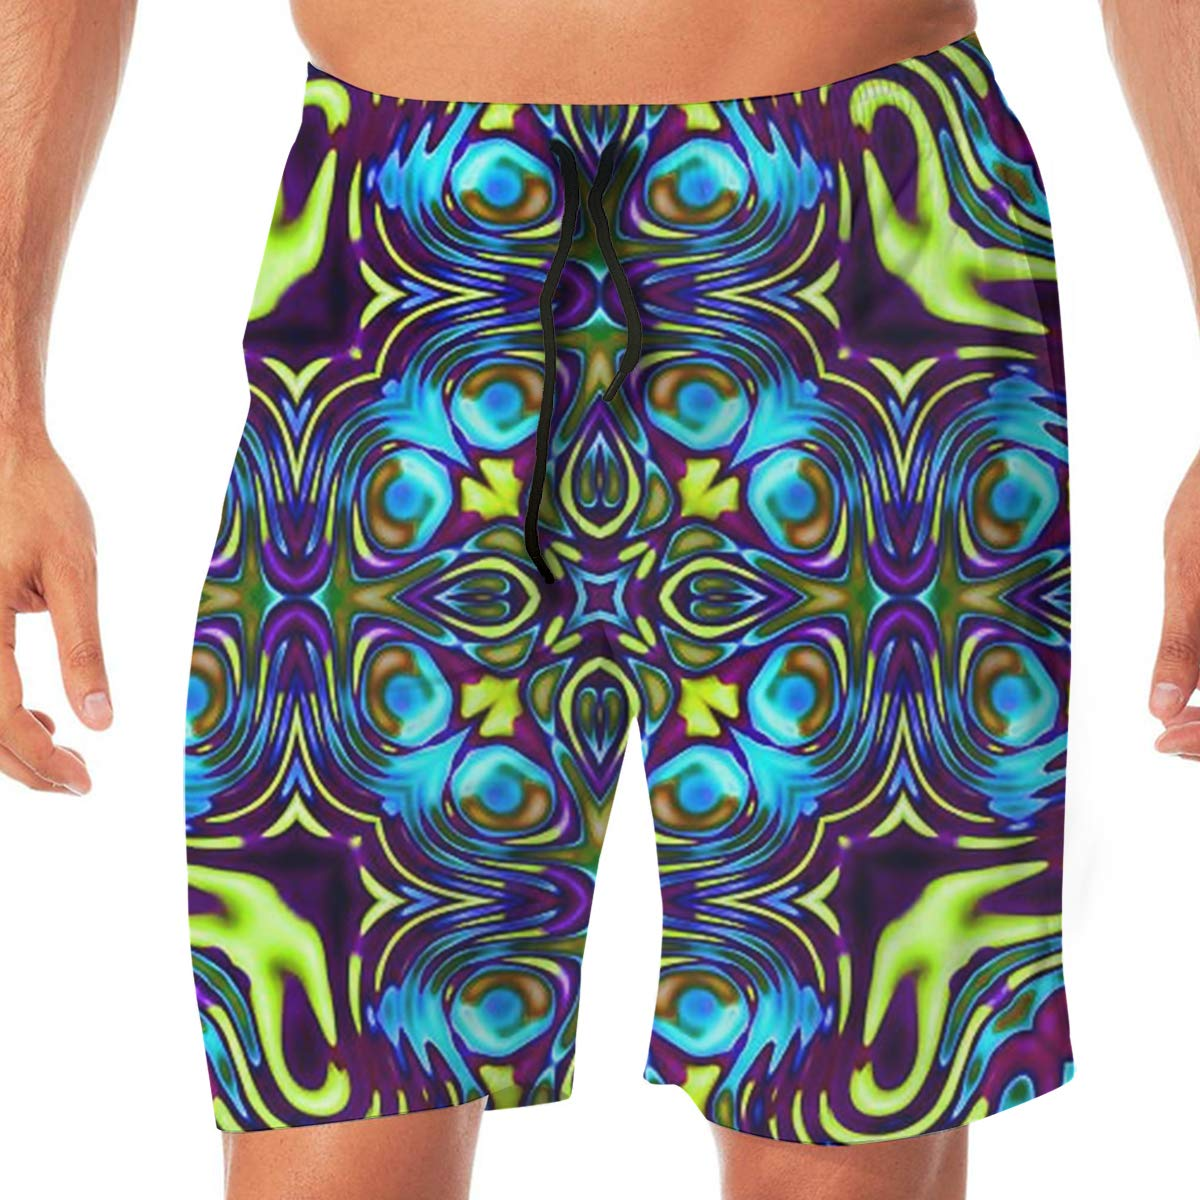 TR2YU7YT Color Psychedelic Geometry Casual Mens Swim Trunks Quick Dry Printed Beach Shorts Summer Boardshorts Bathing Suits with Drawstring